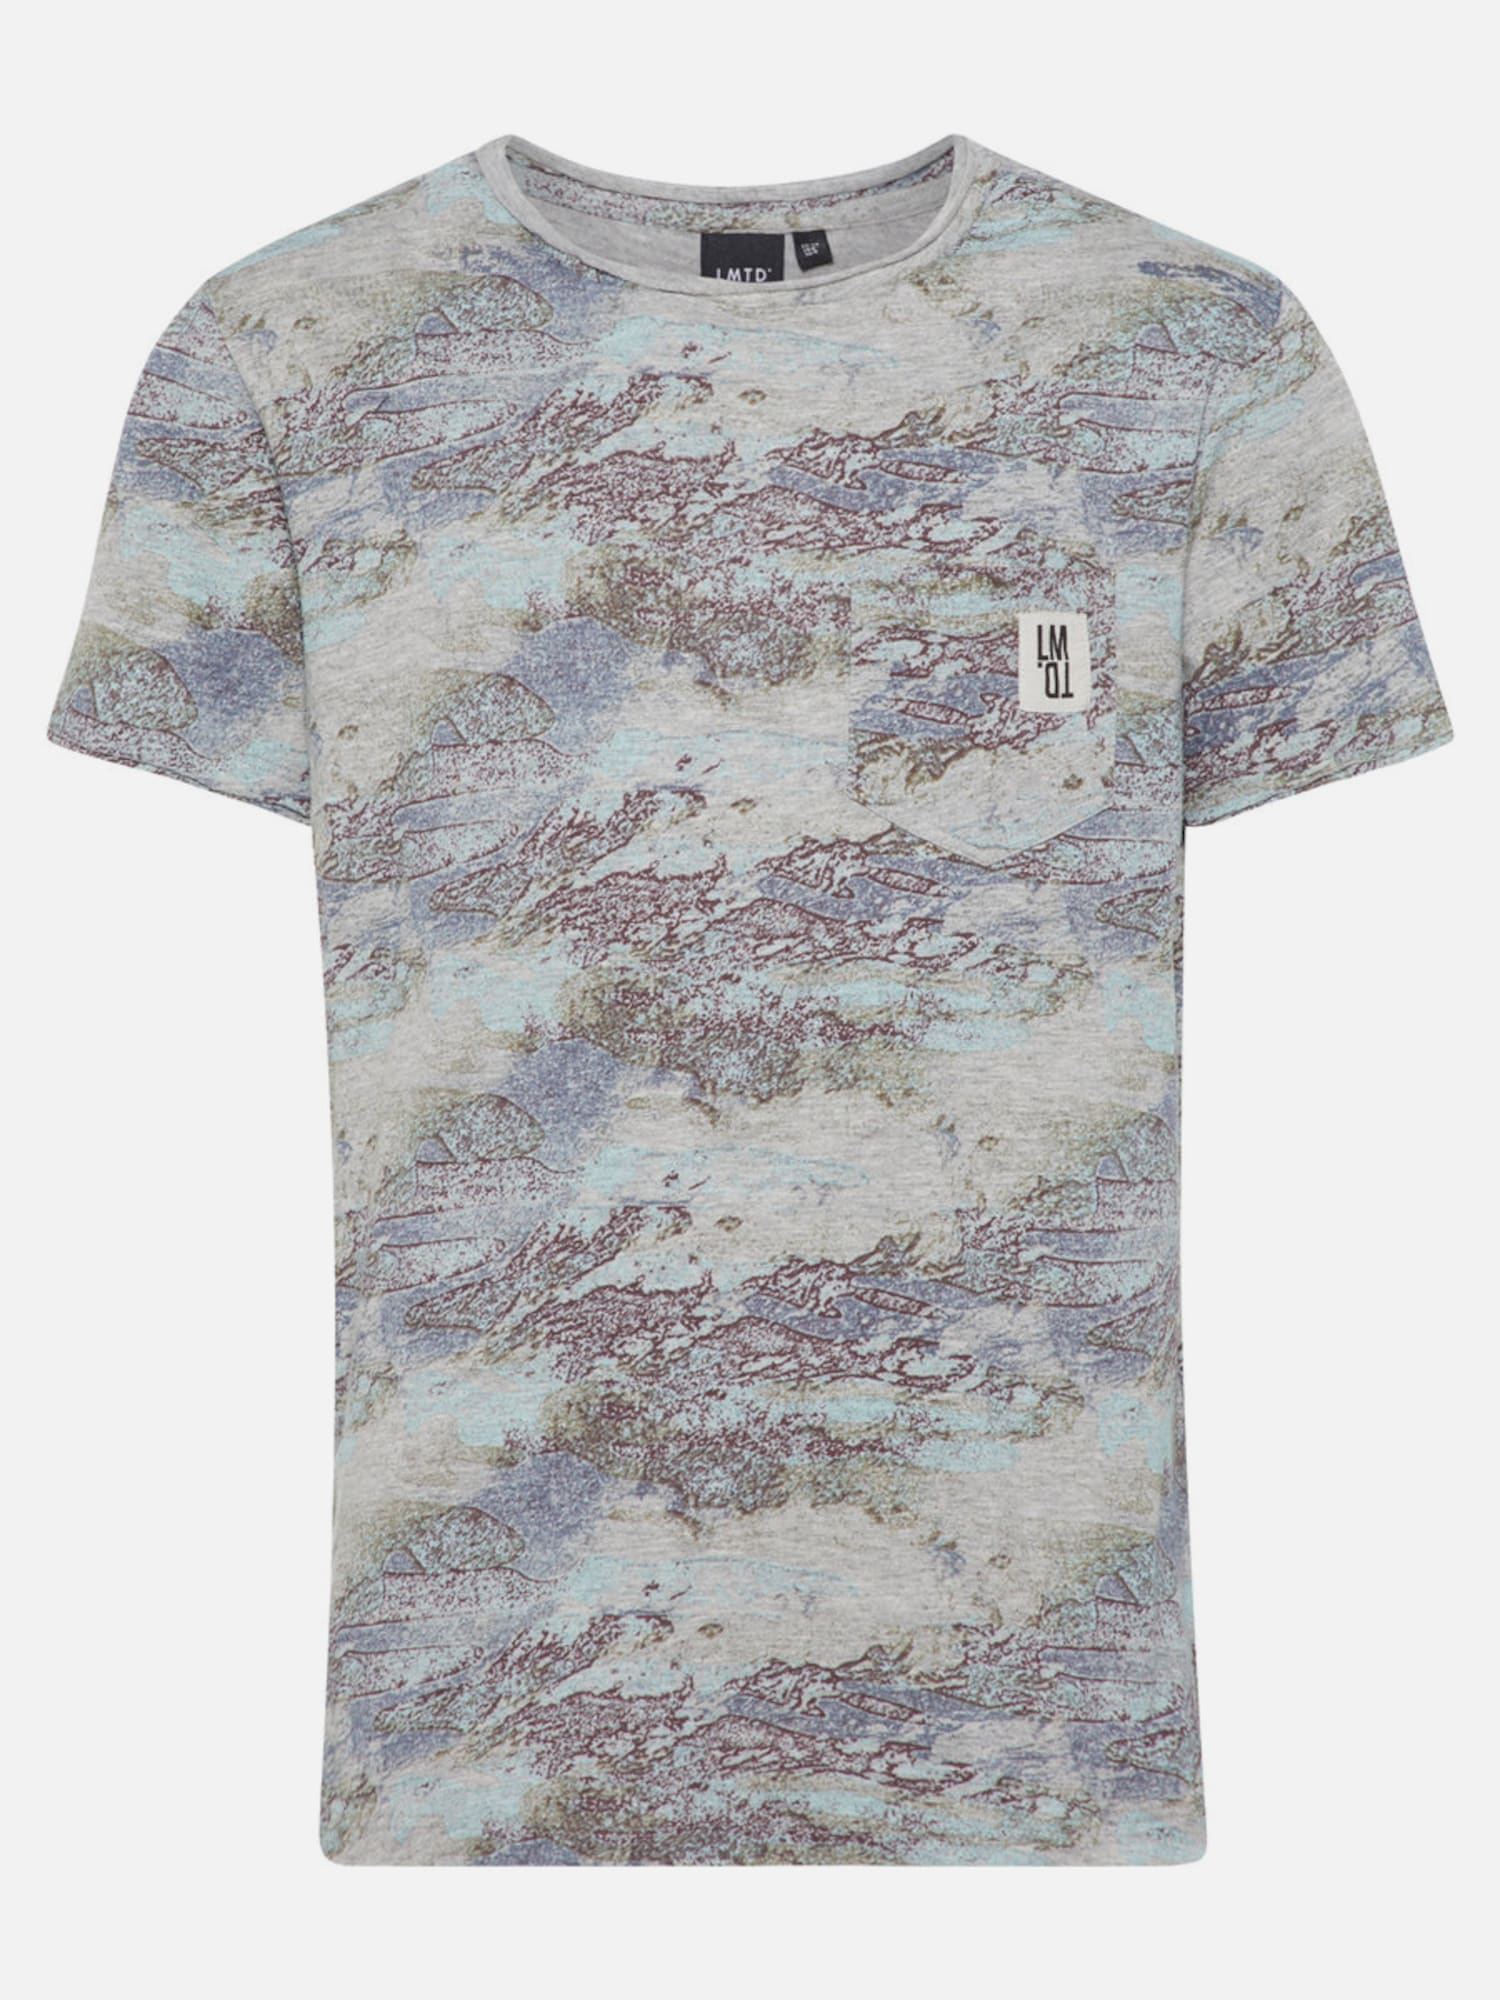 Name it print t shirt in grau about you for Print name on shirt